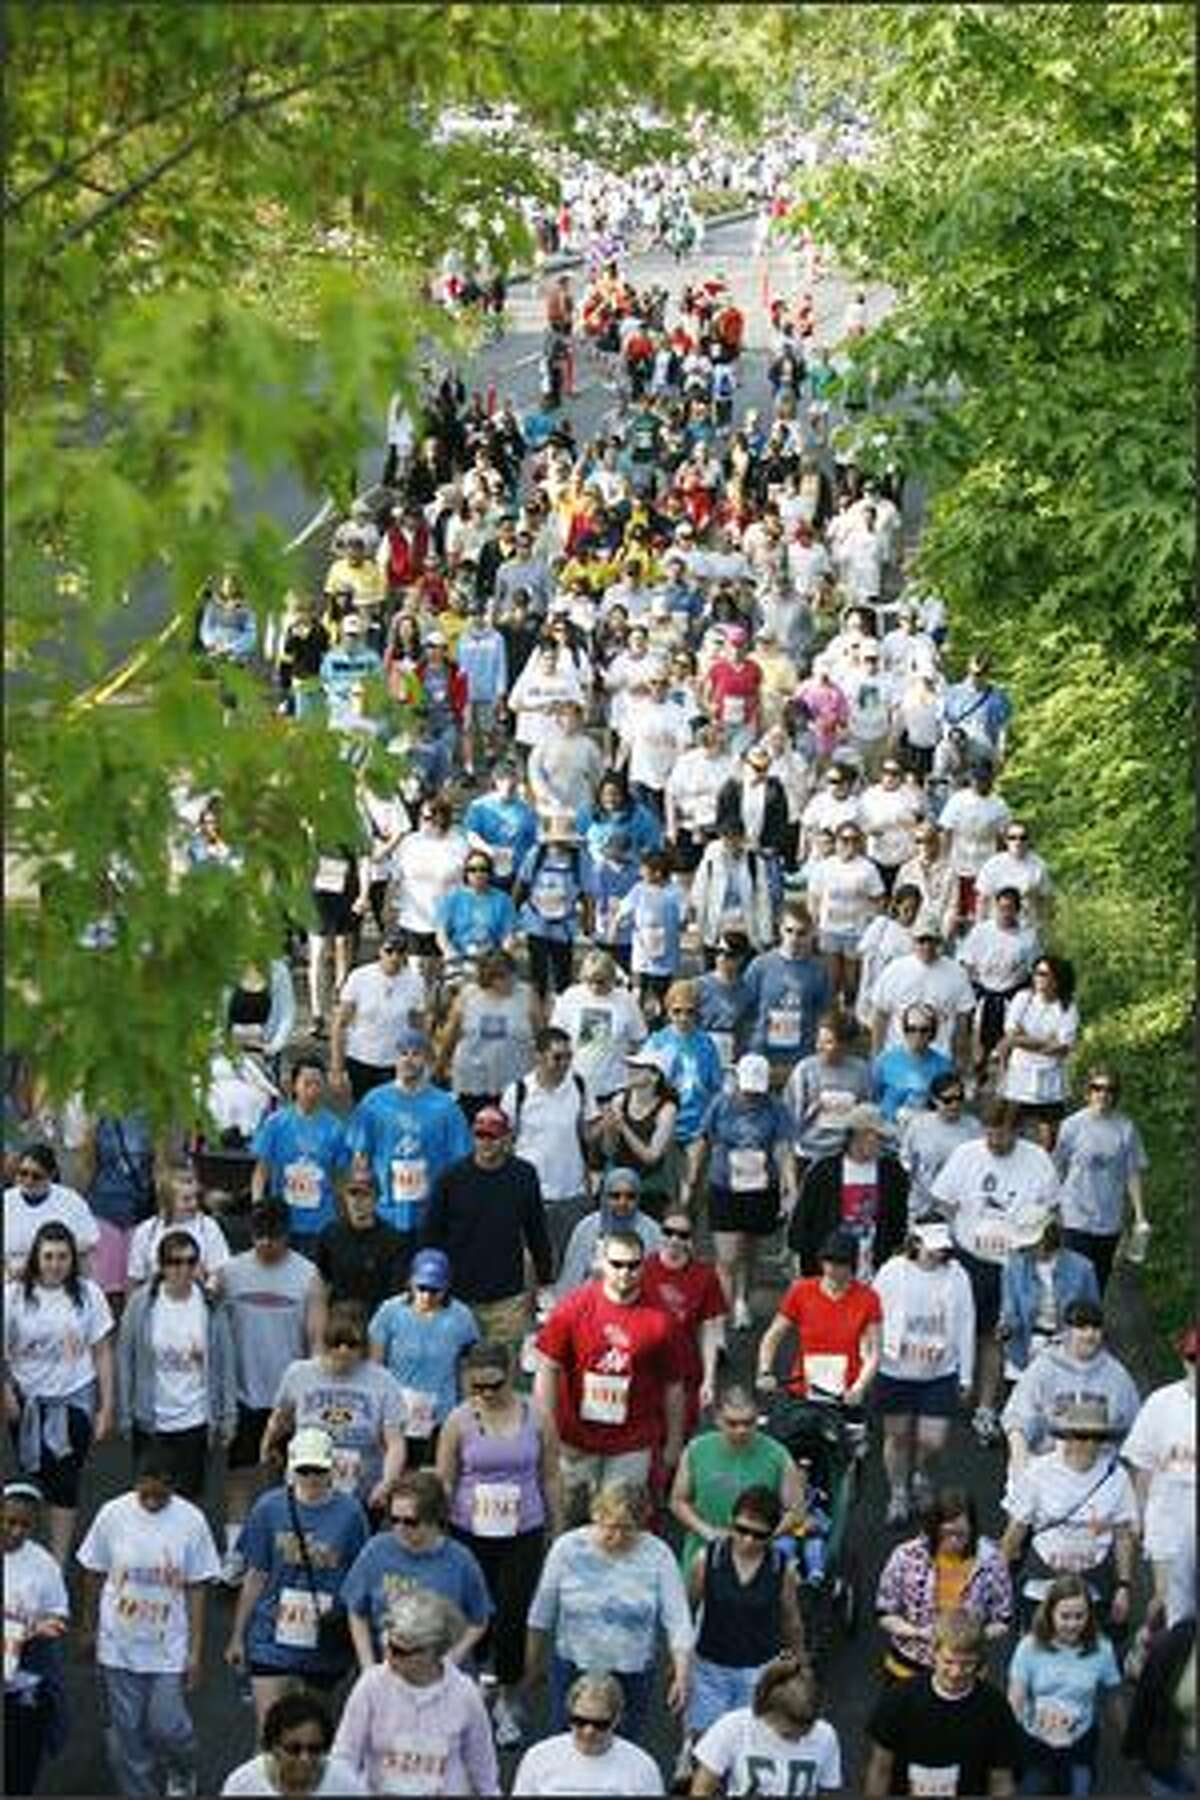 Participants in the Beat The Bridge 4-mile family walk fill Montlake Boulevard.